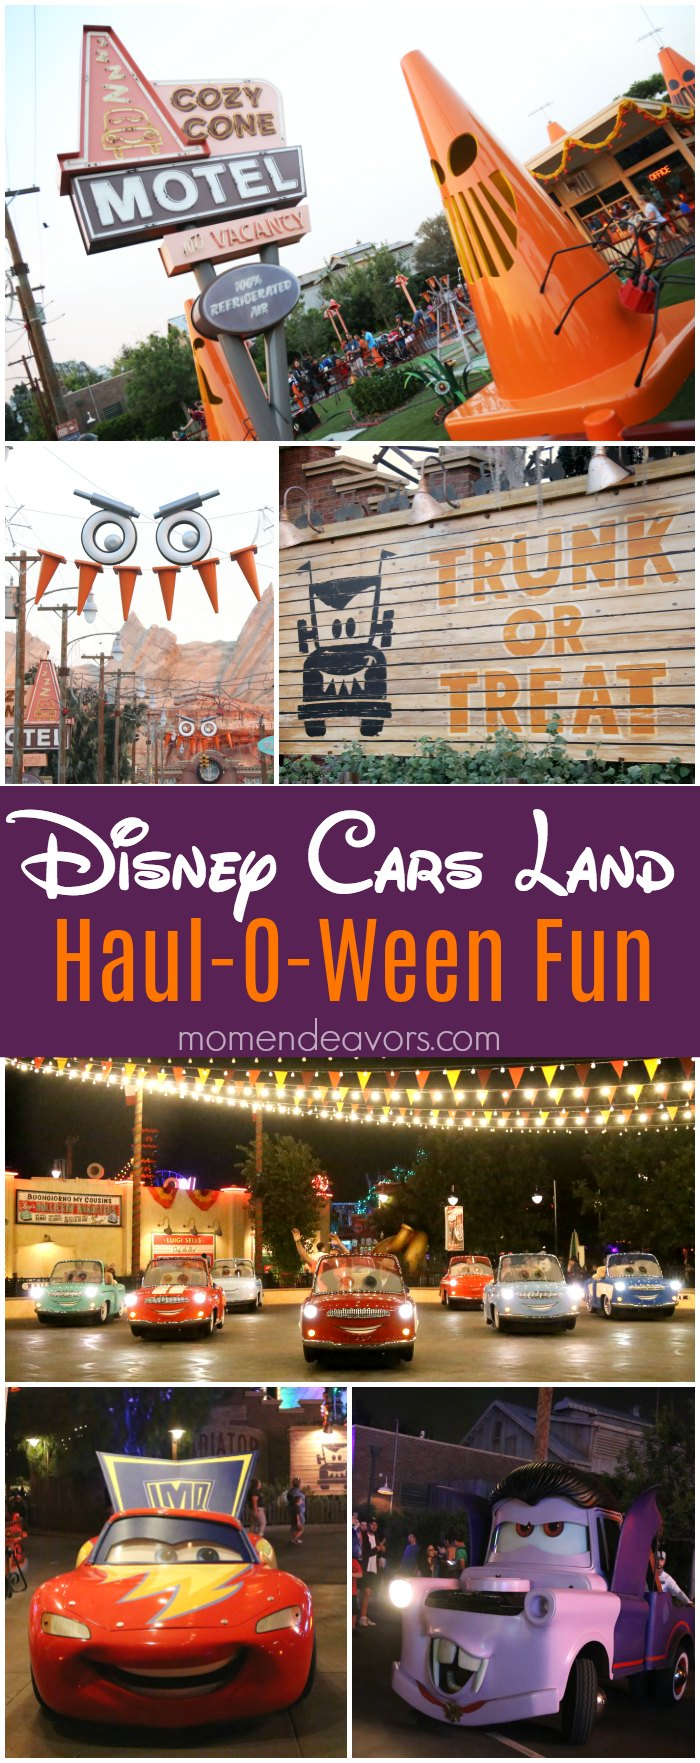 Disney Cars Land Halloween Fun